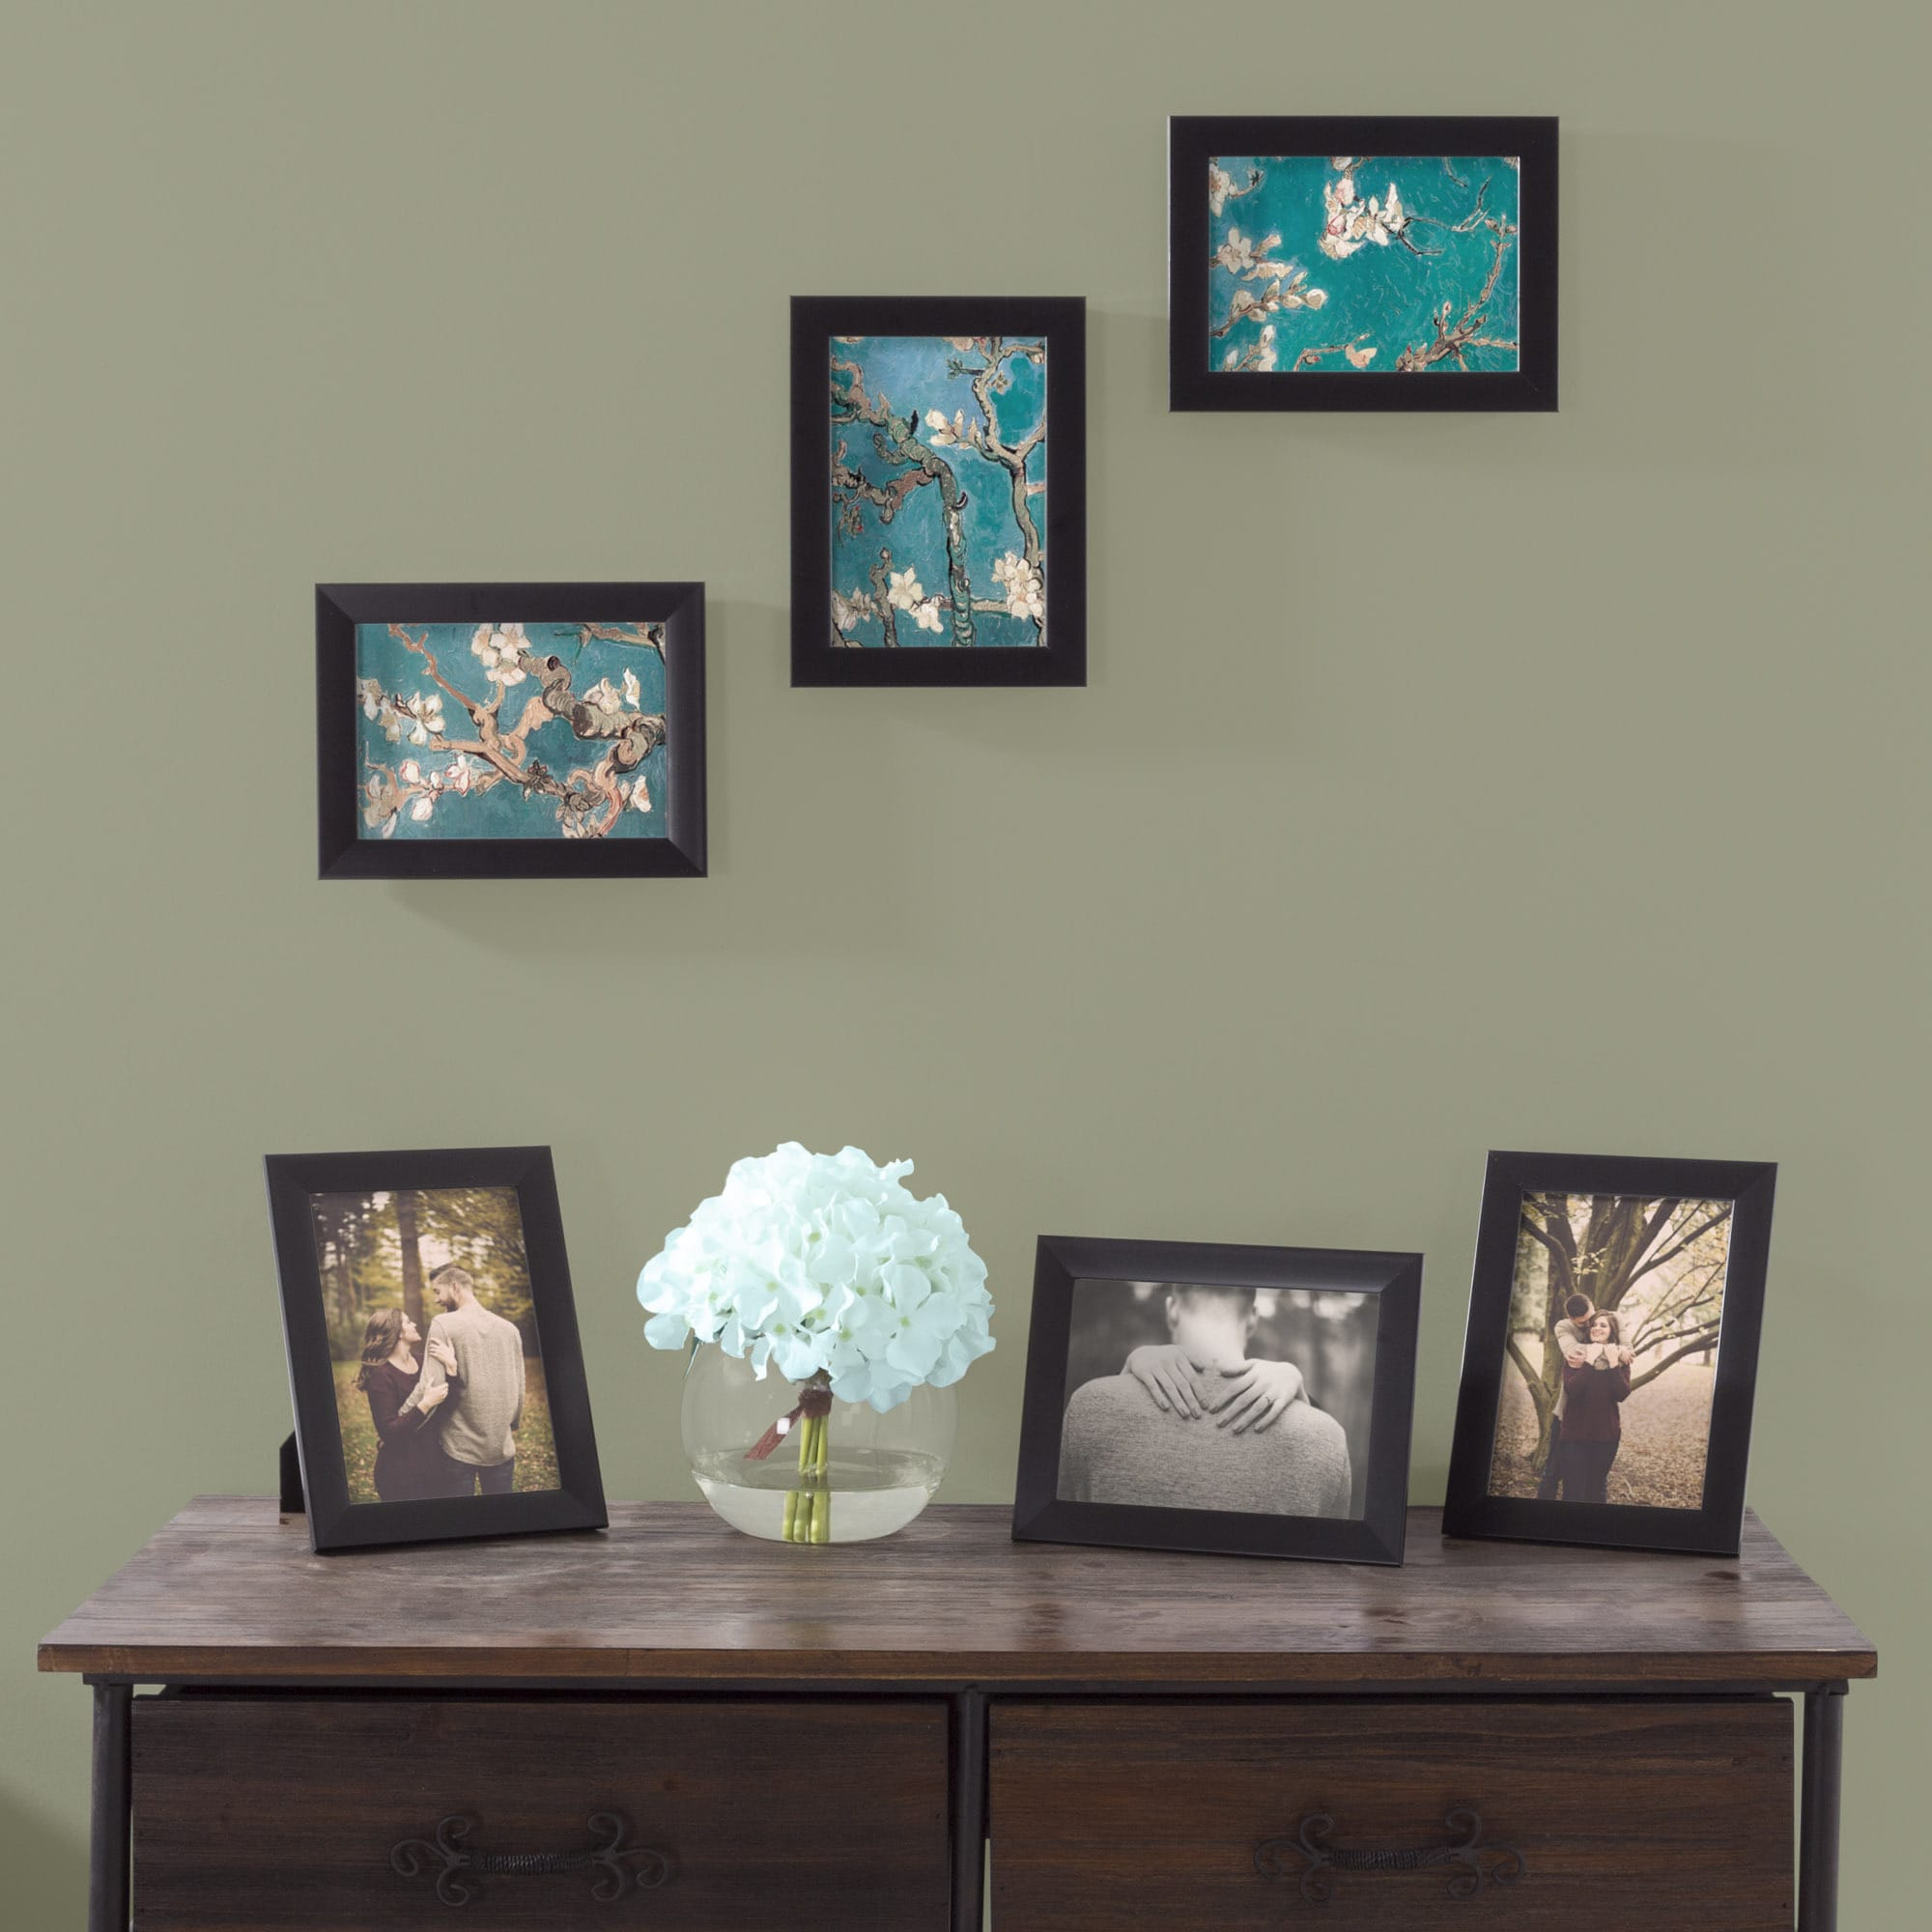 Picture frame set 5x7 frames pack for picture gallery wall with picture frame set 5x7 frames pack for picture gallery wall with stand and hanging hooks set of 6 by lavish home black free shipping on orders over 45 jeuxipadfo Choice Image